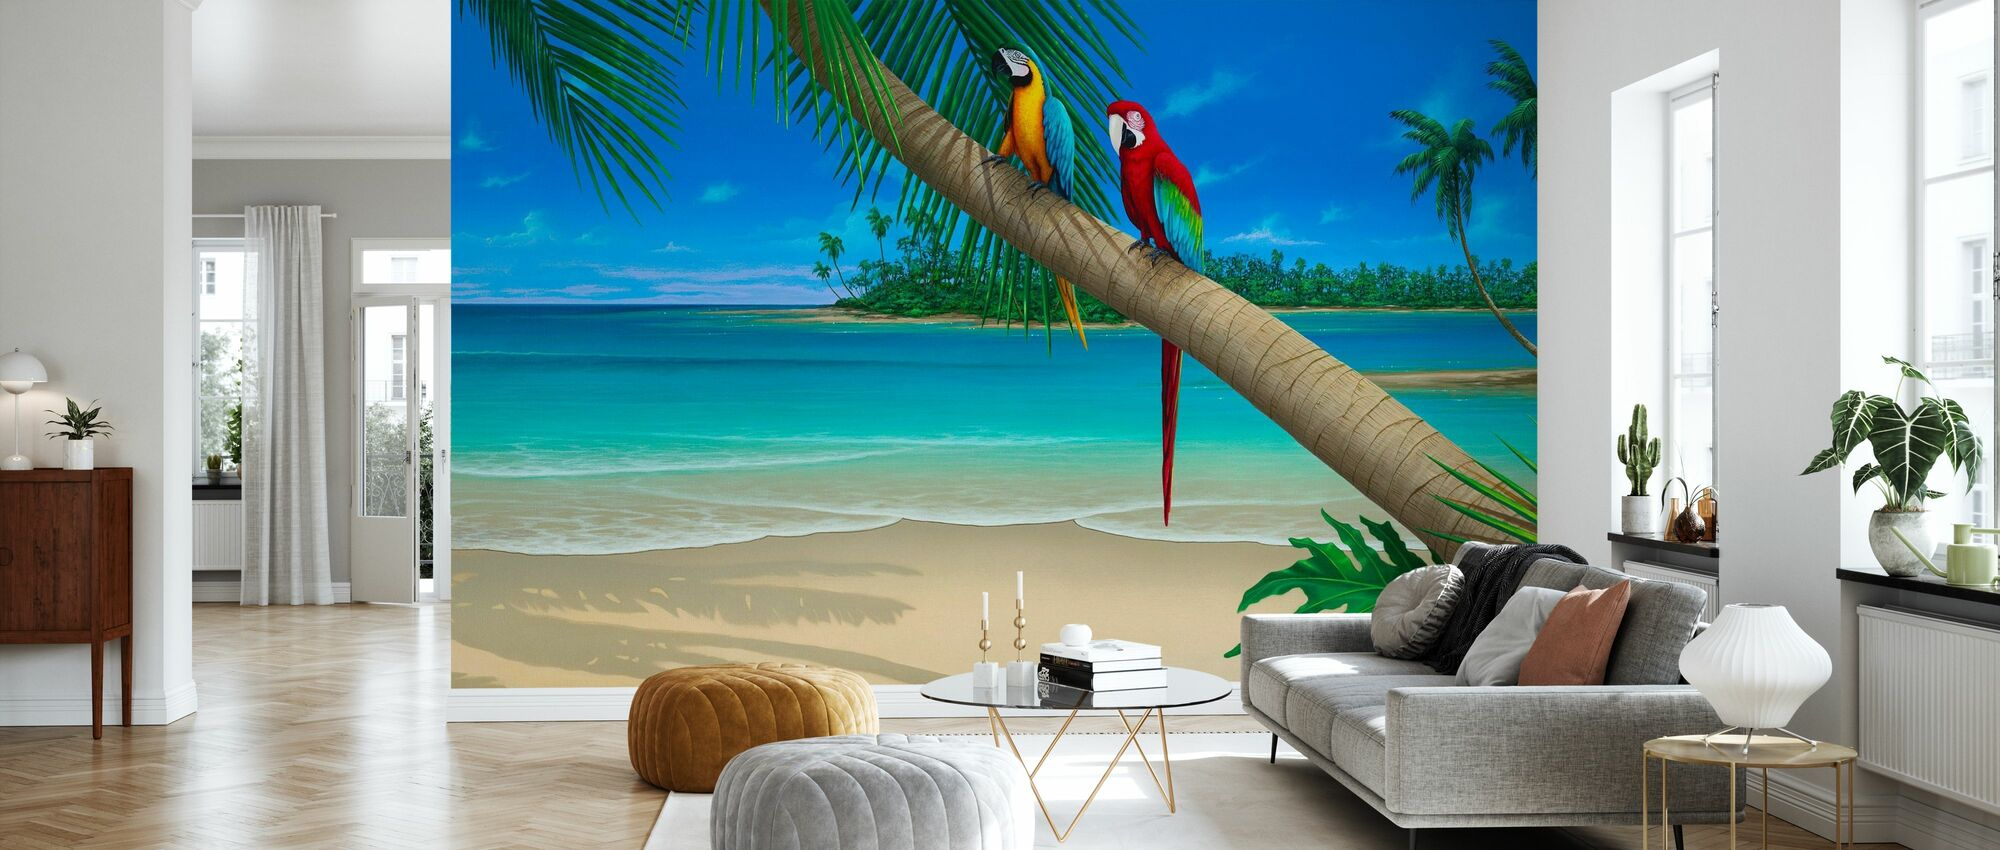 A Perfect Day II - Wallpaper - Living Room